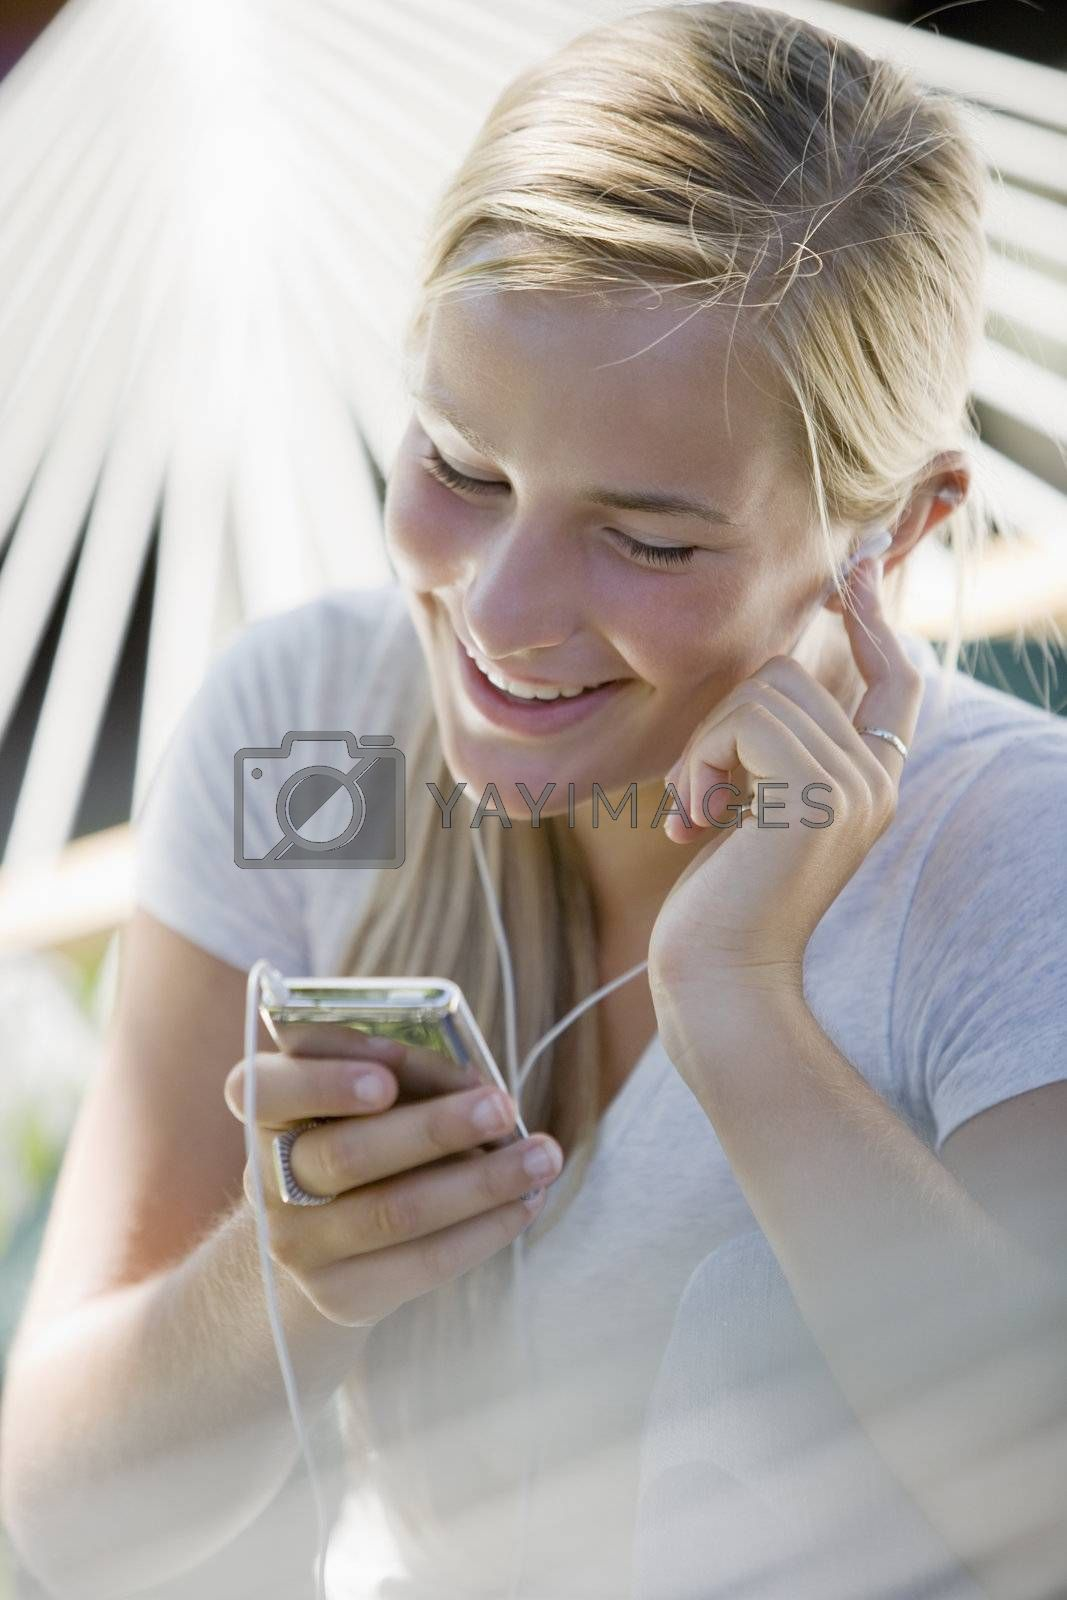 Teenager with earbuds listening to MP3 player